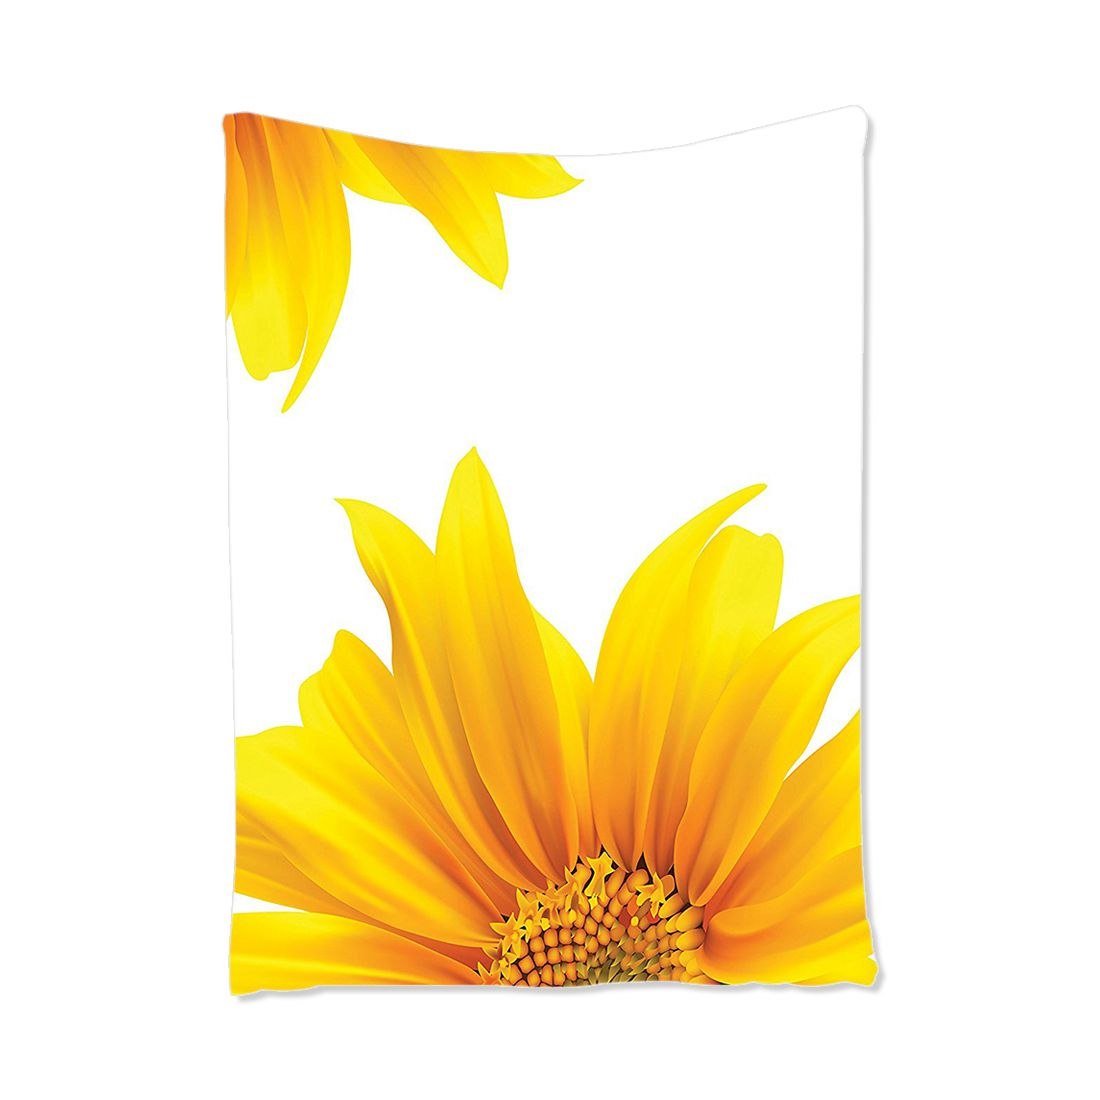 Flourishing Sun Flower Design Modern Vibrant Floral Summer Inspiration Artprint Decor, Bedroom Living Room Dorm Wall Hanging Tap